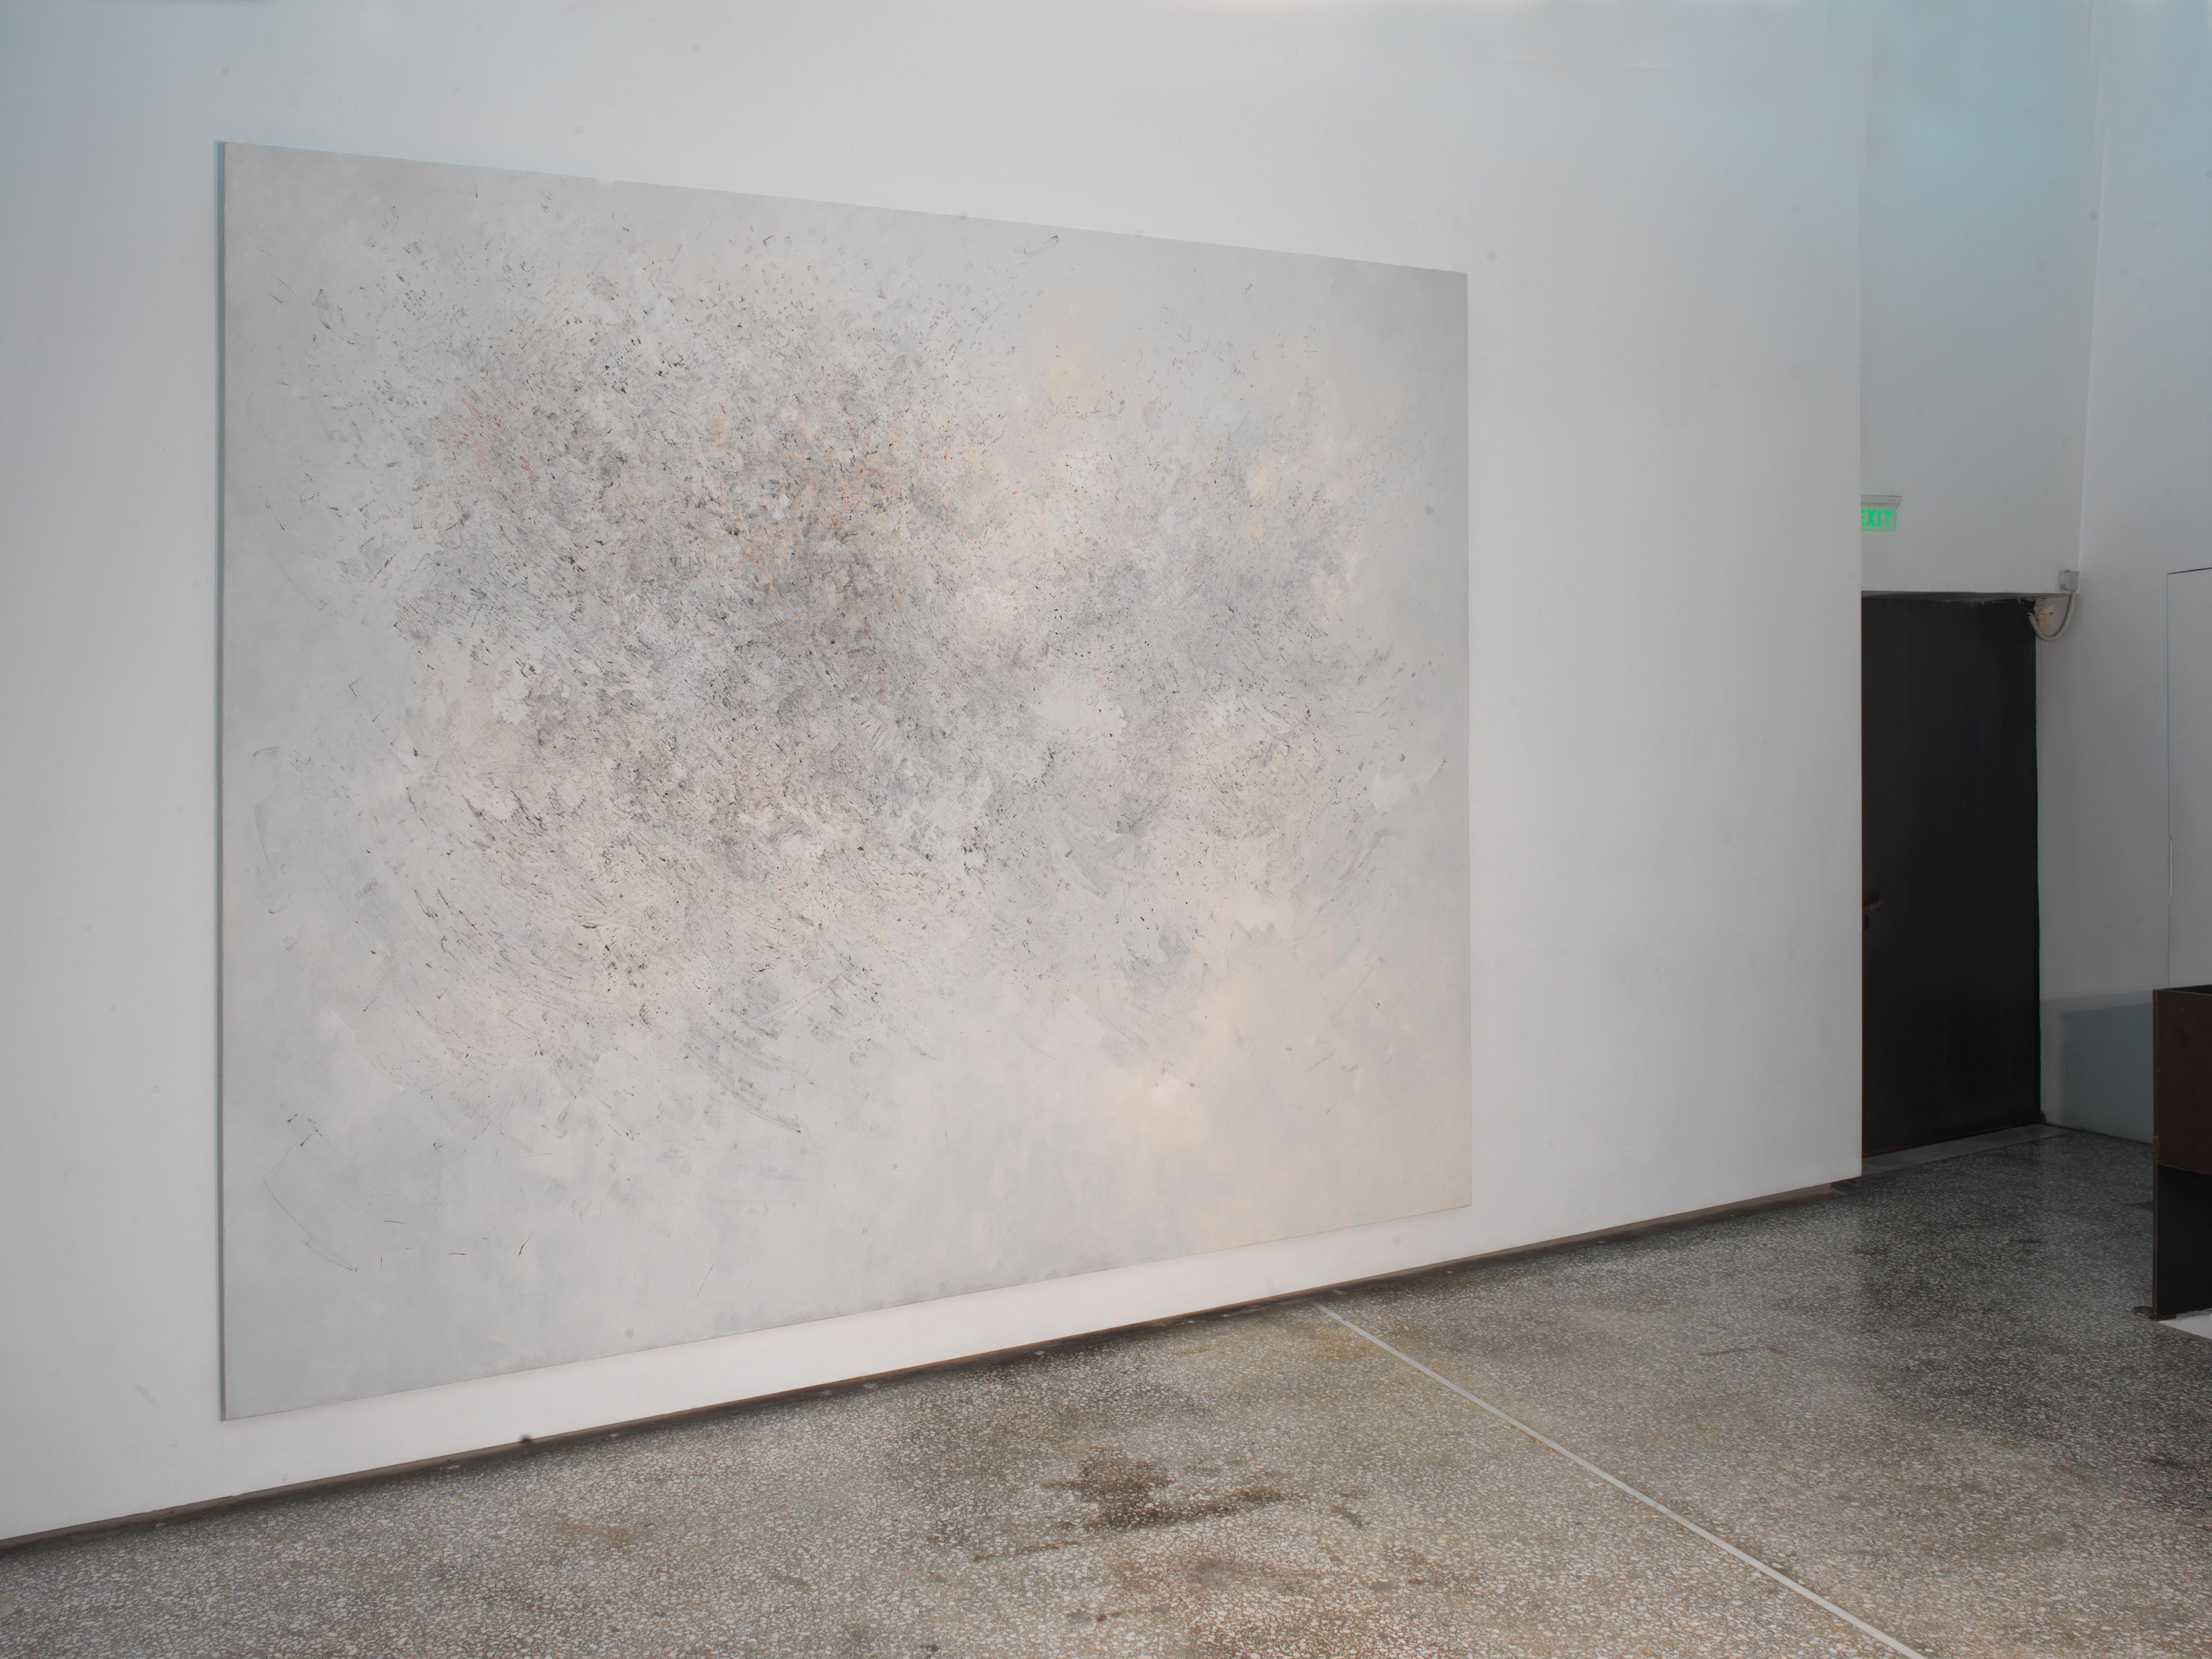 Solo Show at Breeder Gallery 2014